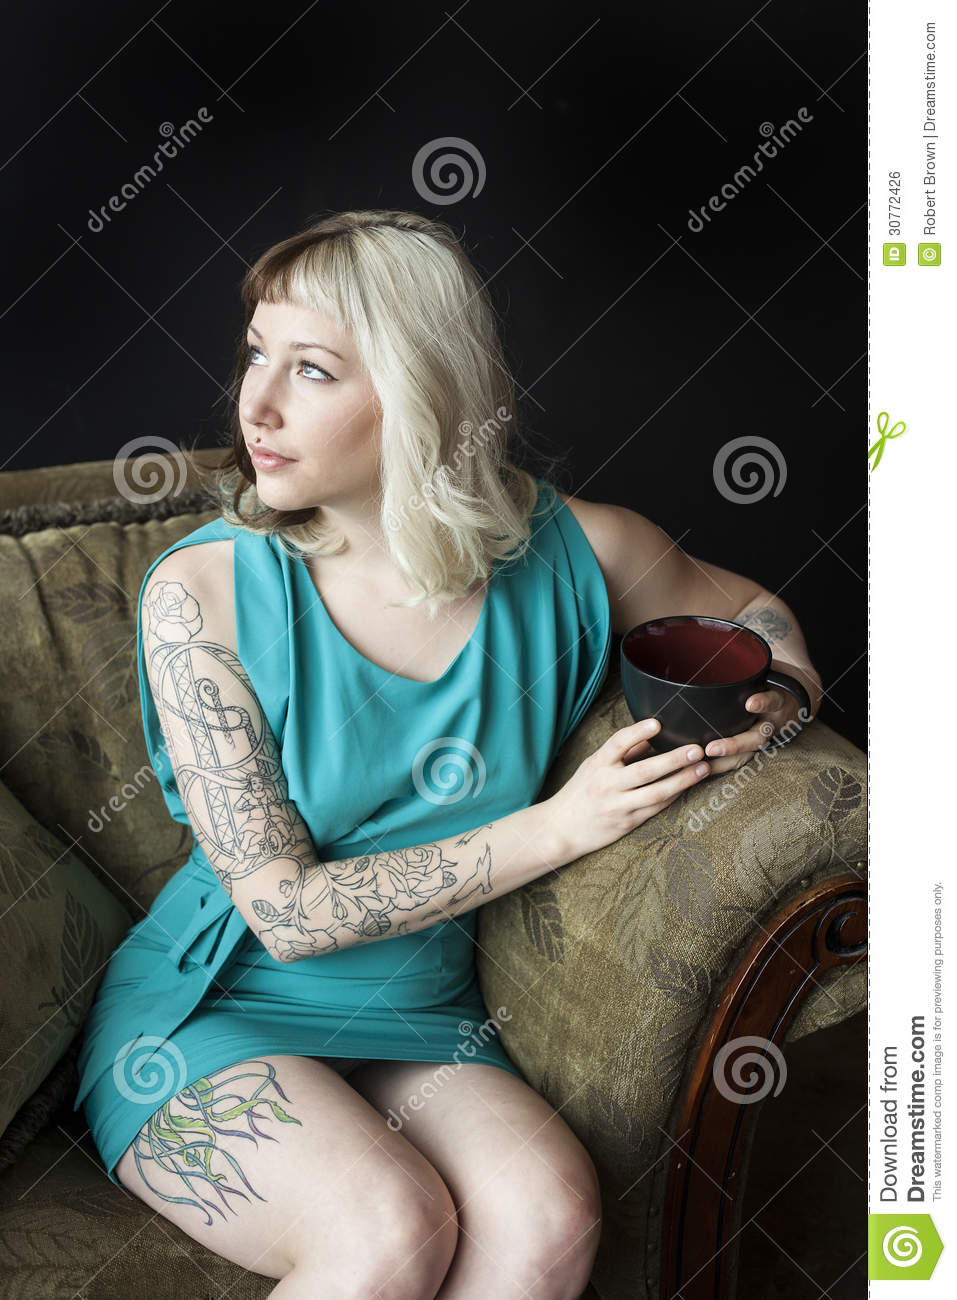 Beautiful Young Woman with Brown and Blond Hair Holding Black Co